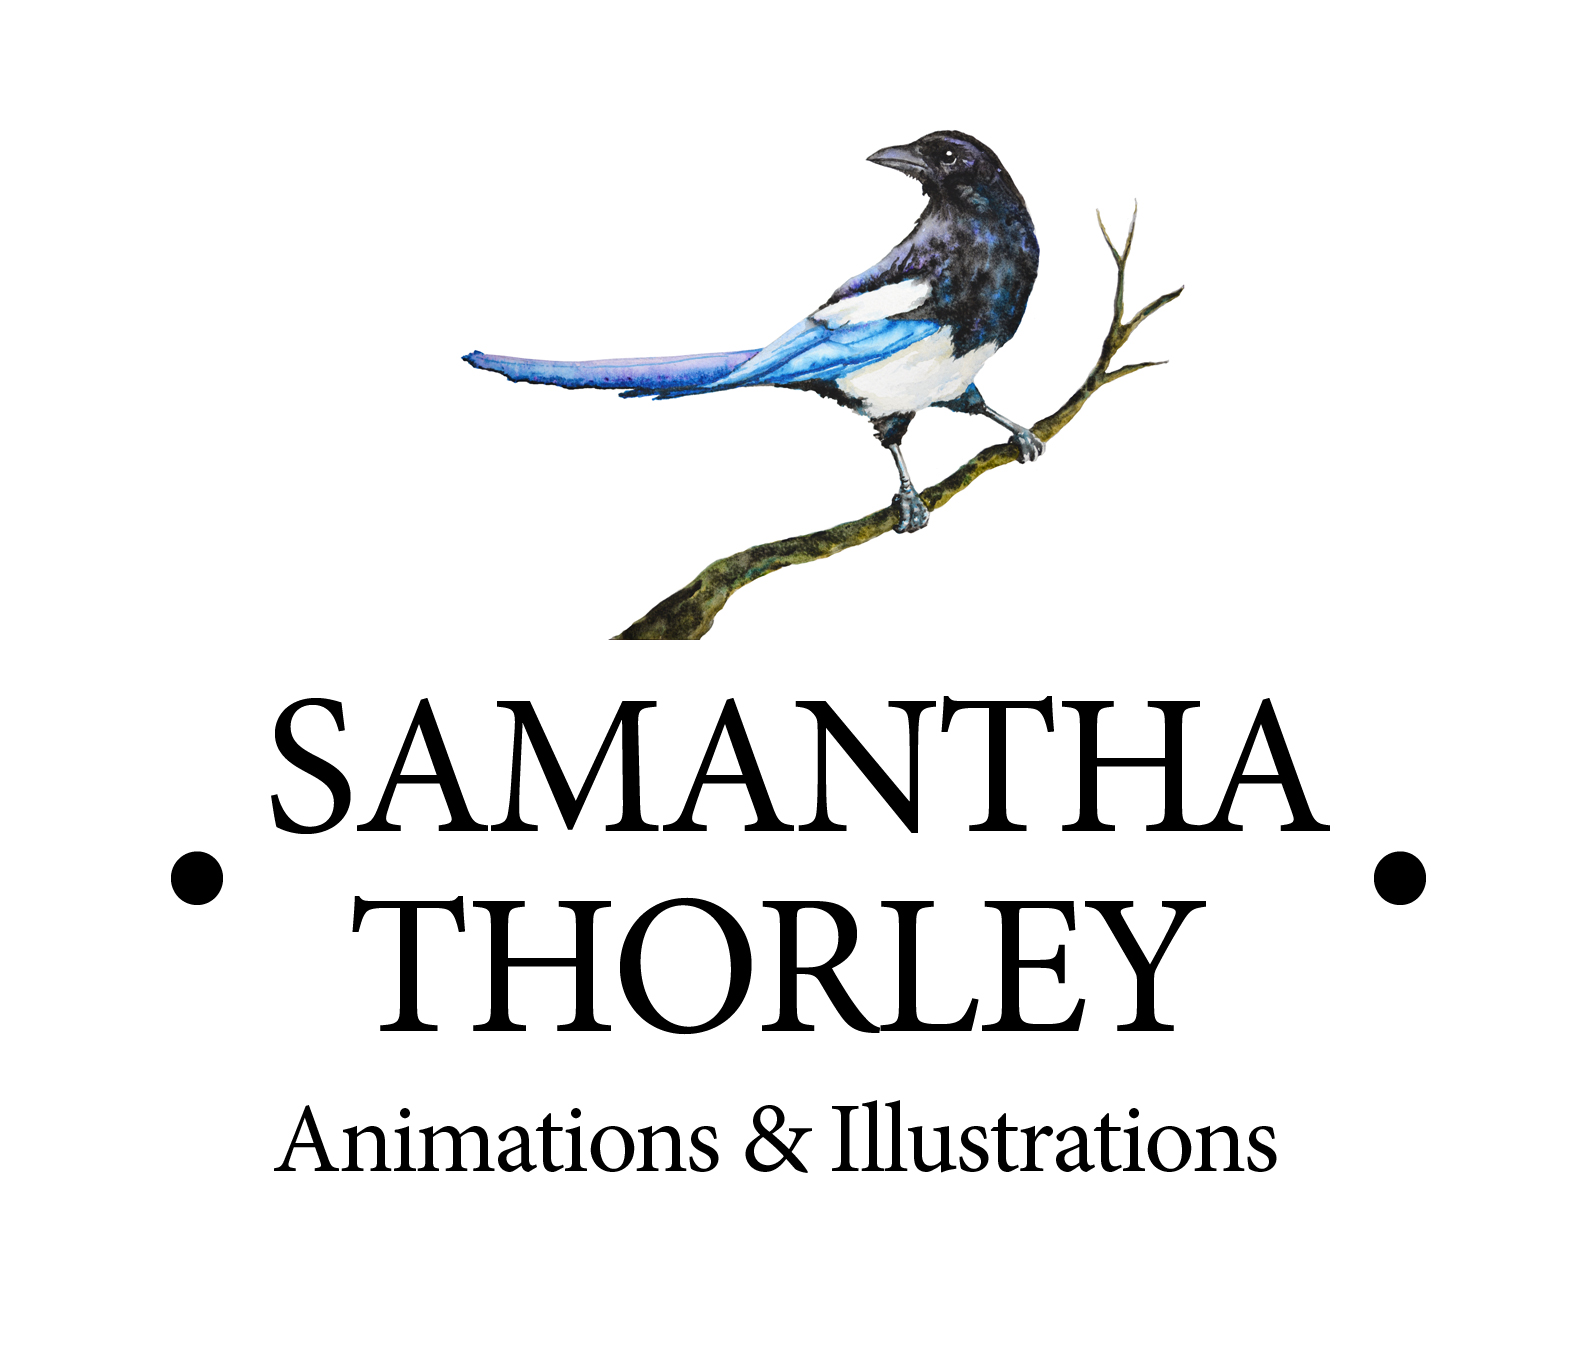 Samantha Thorley